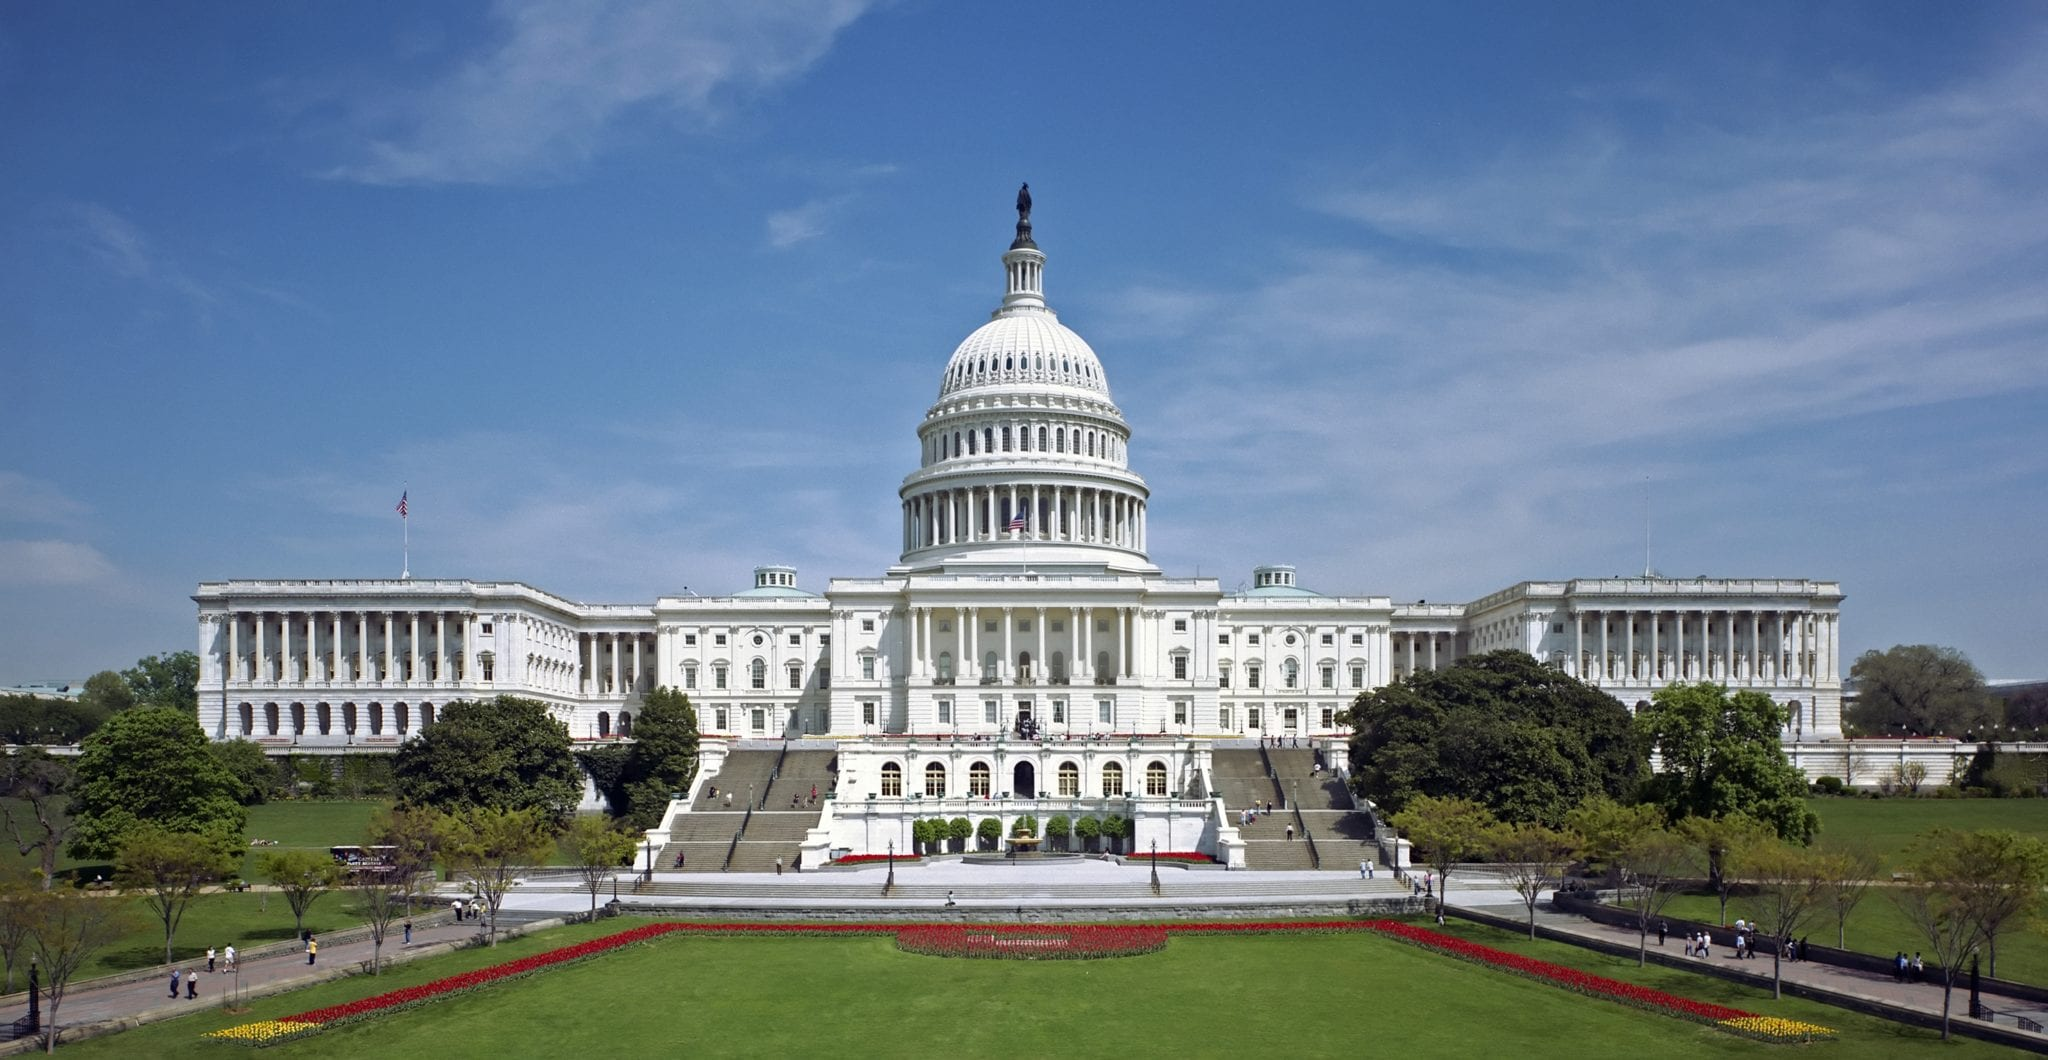 Photo from WikiCommons, labeled for reuse: https://upload.wikimedia.org/wikipedia/commons/a/a3/United_States_Capitol_west_front_edit2.jpg